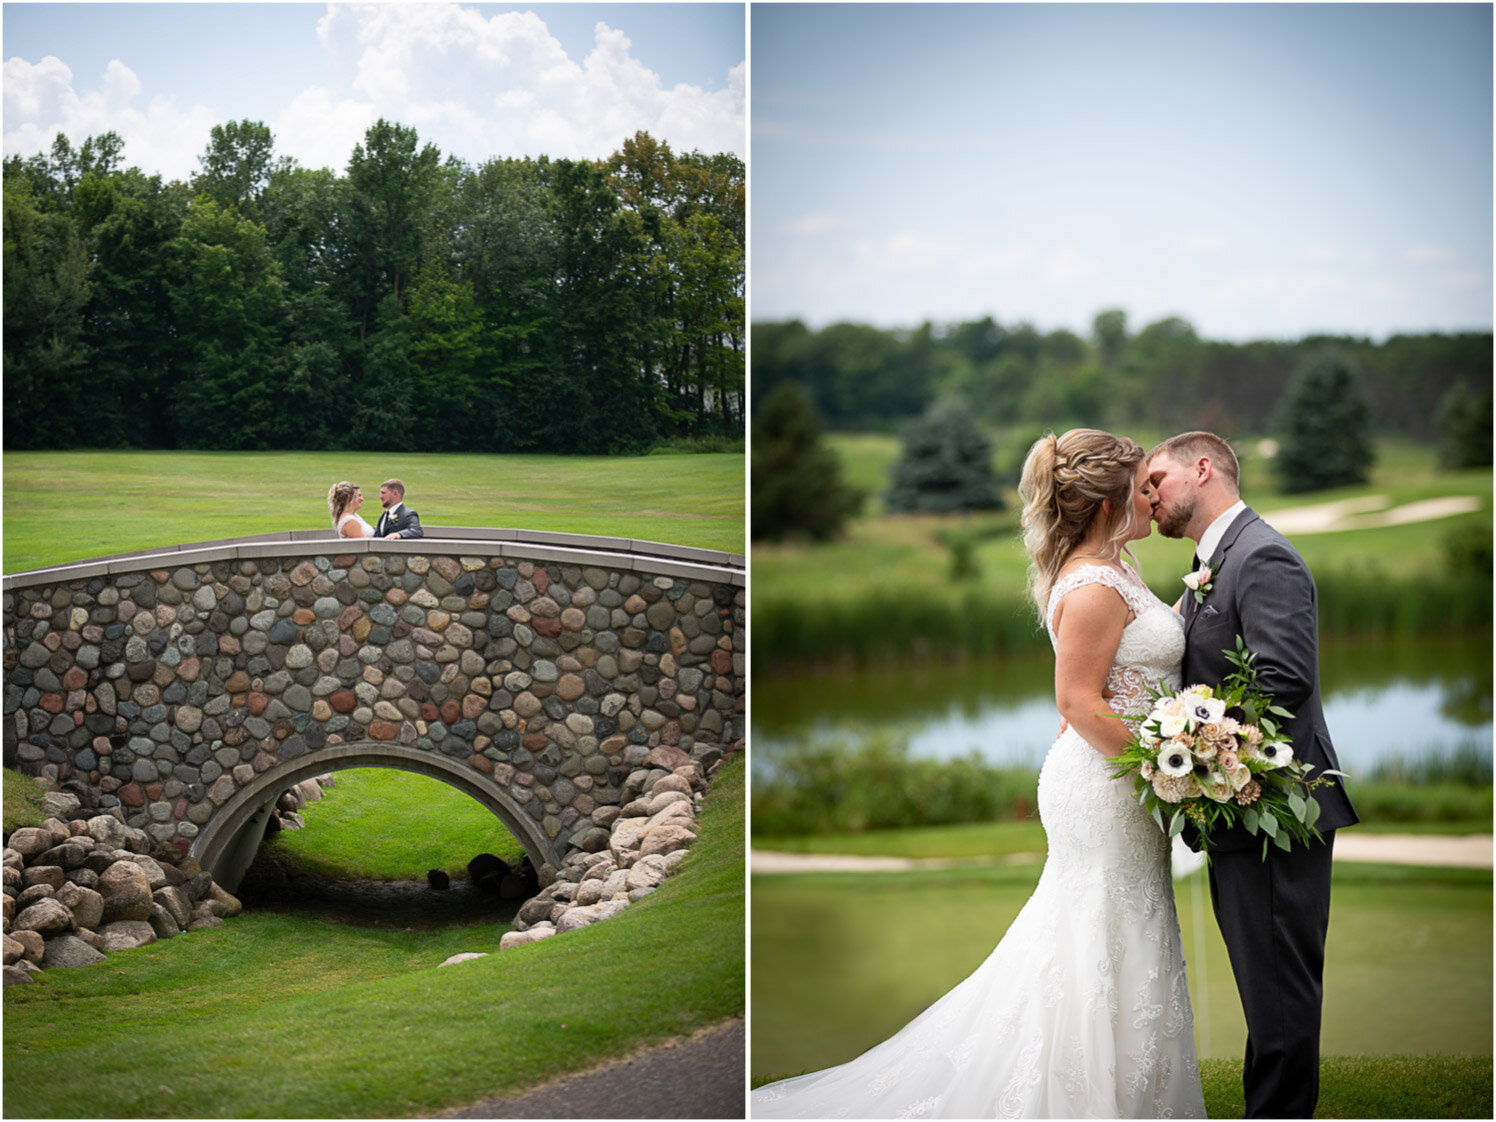 13-rush-creek-golf-course-bride-groom-portrait-outside-path-mahonenphotography-mn-wedding-photographer.jpg